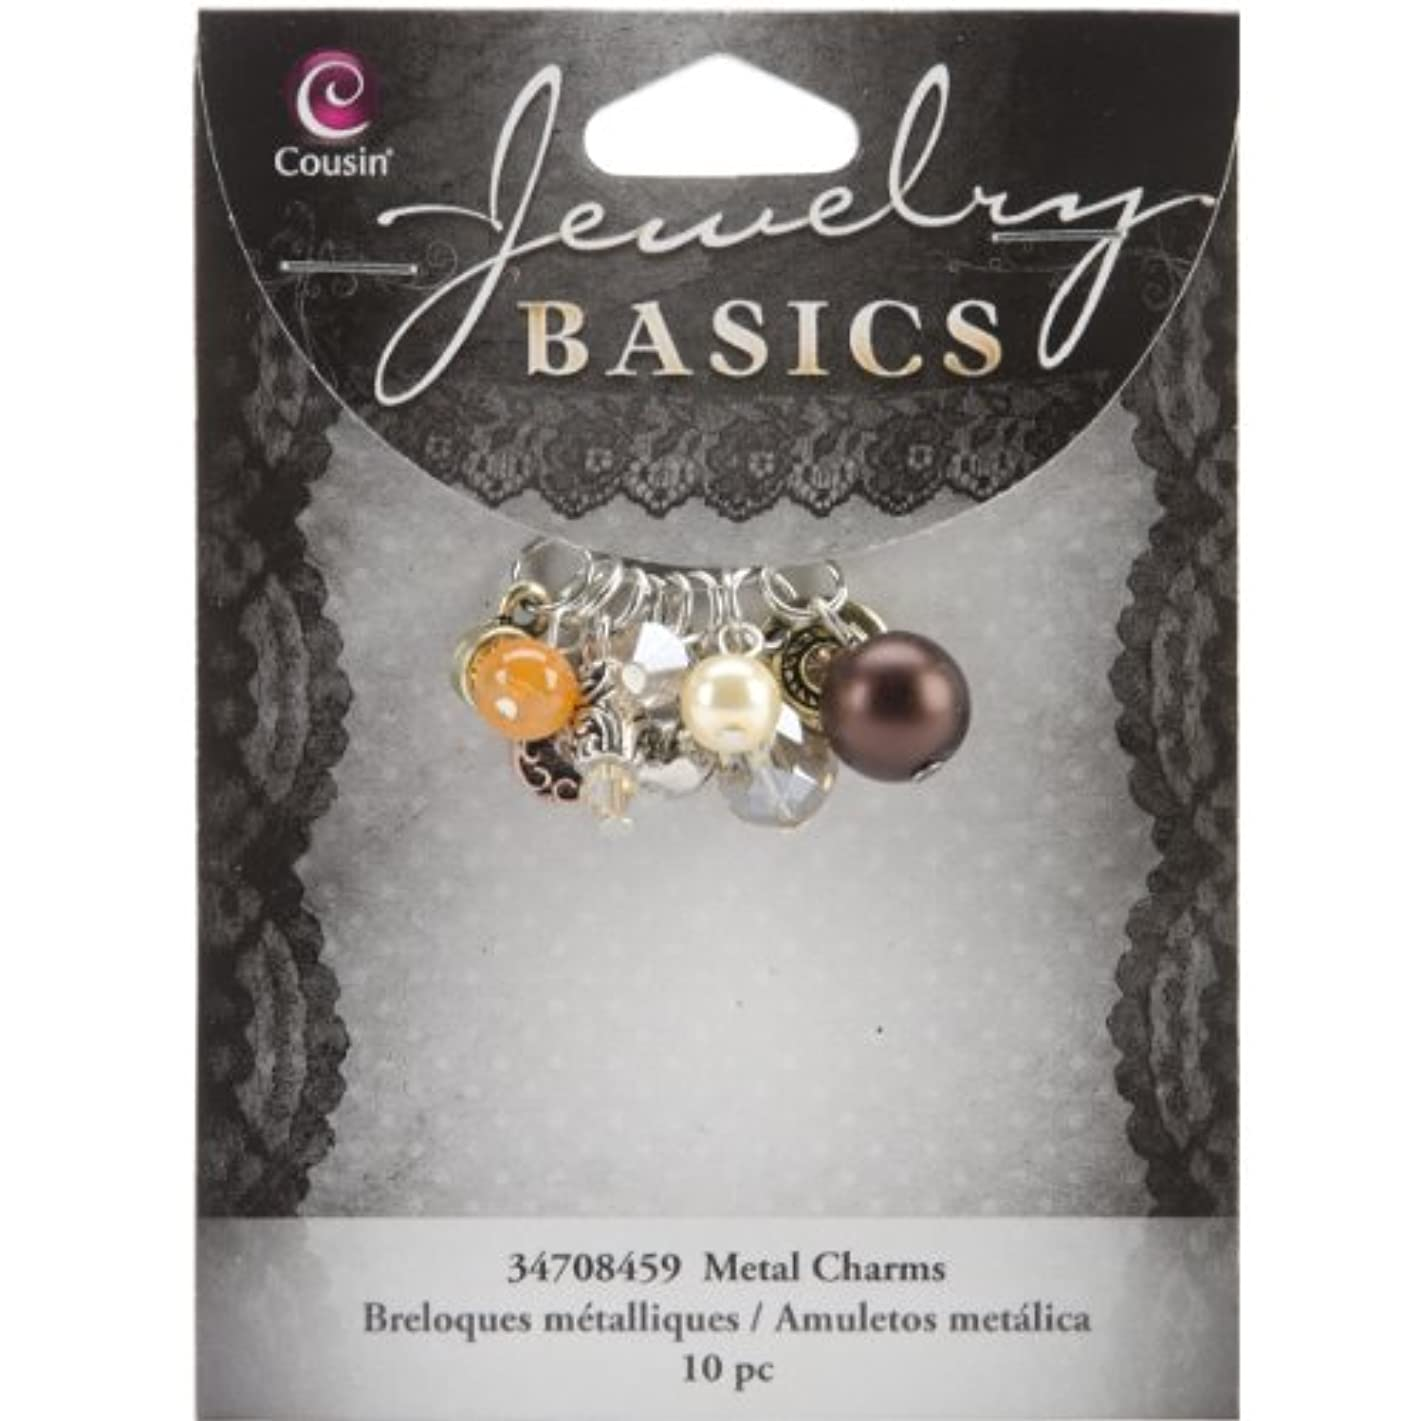 Cousin Jewelry Basics 10-Piece Glass/Metal Bead Cluster Brown